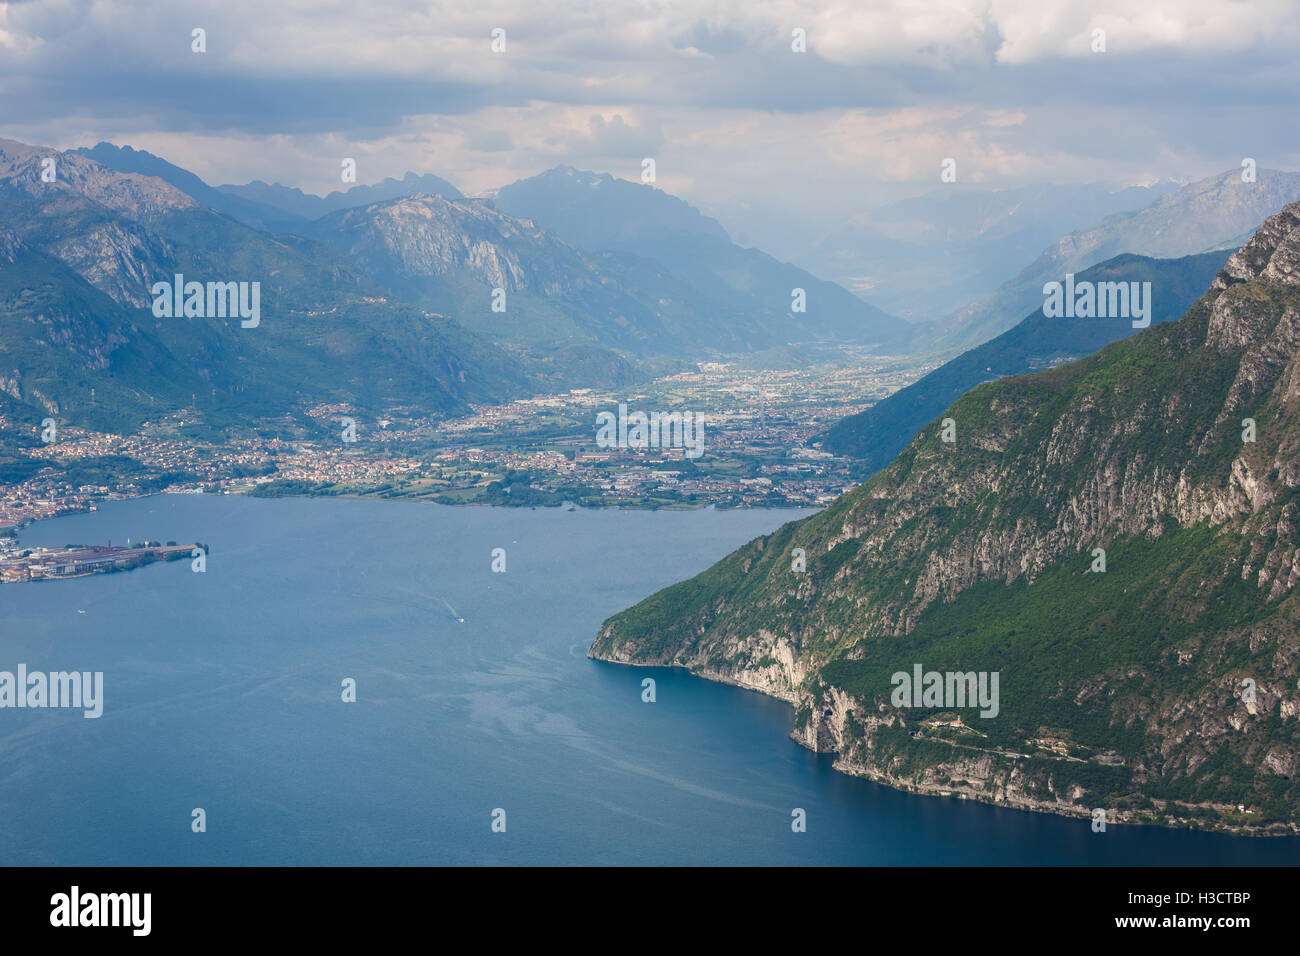 Landscape of Lake Iseo from aerial view, North Italy - Stock Image